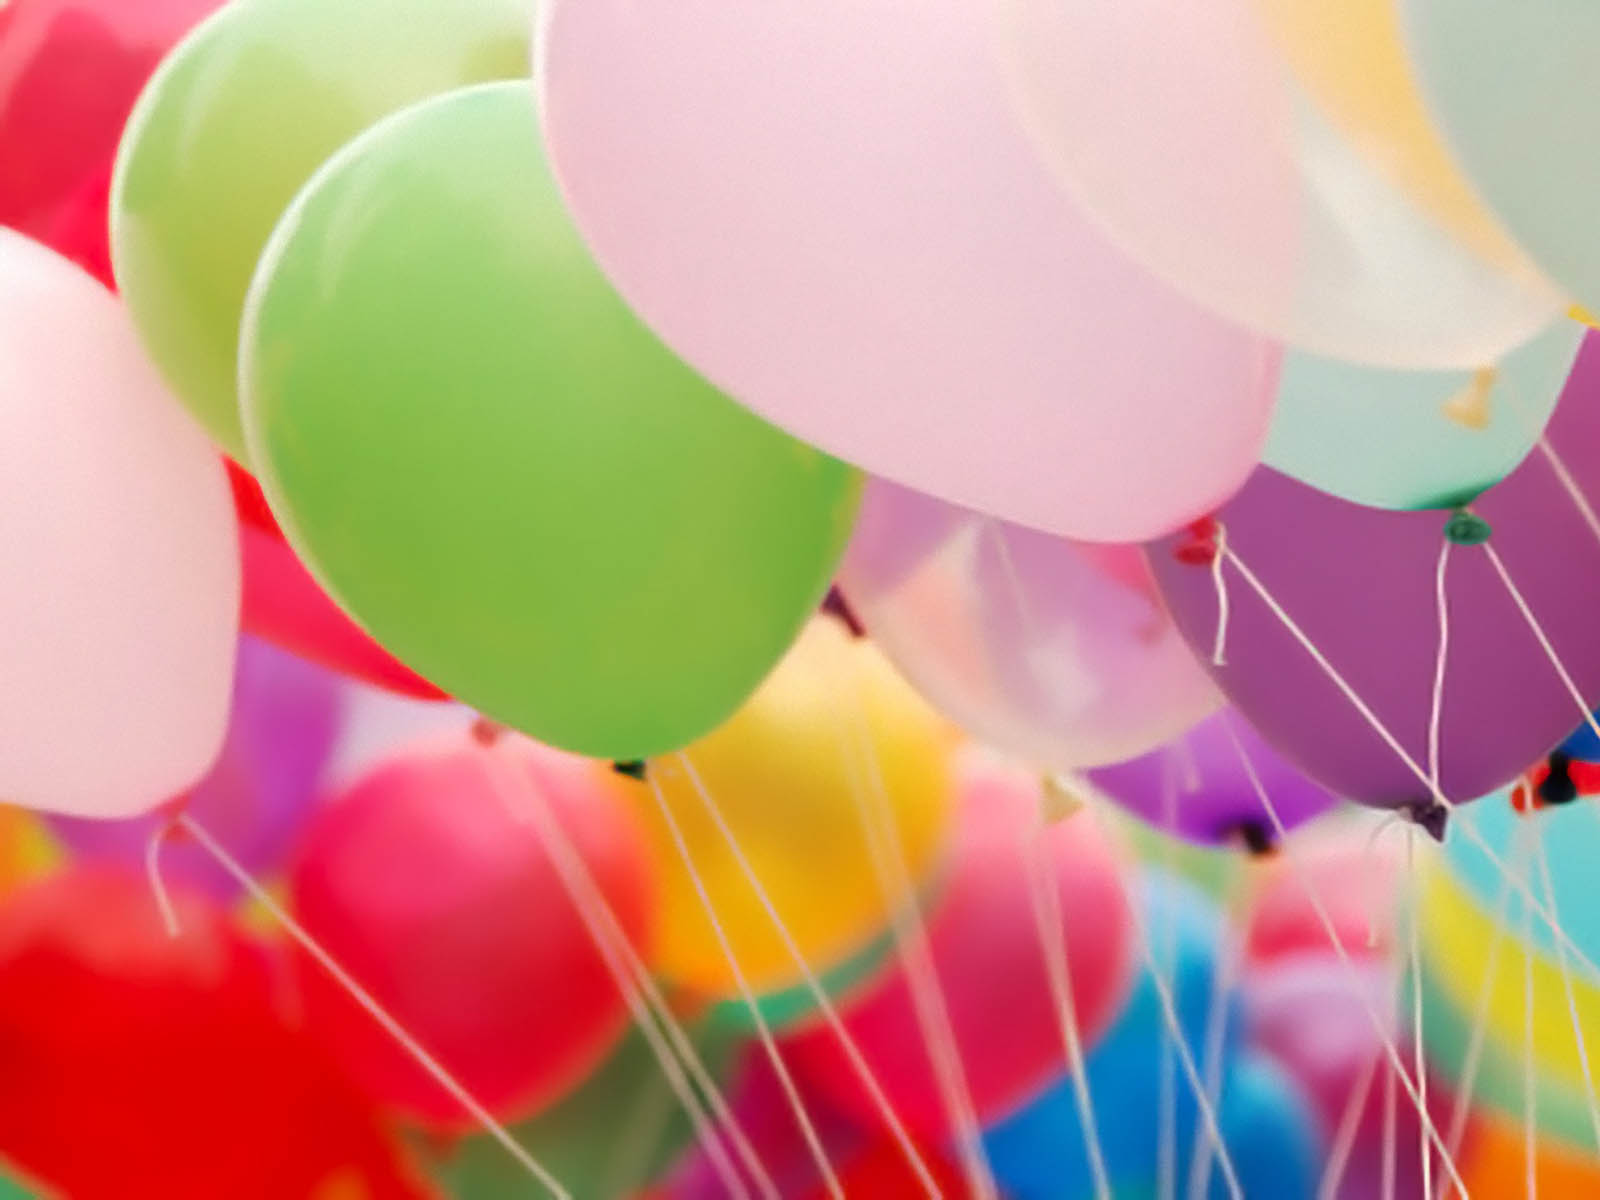 Ballons Wallpapers Balloons Wallpapers